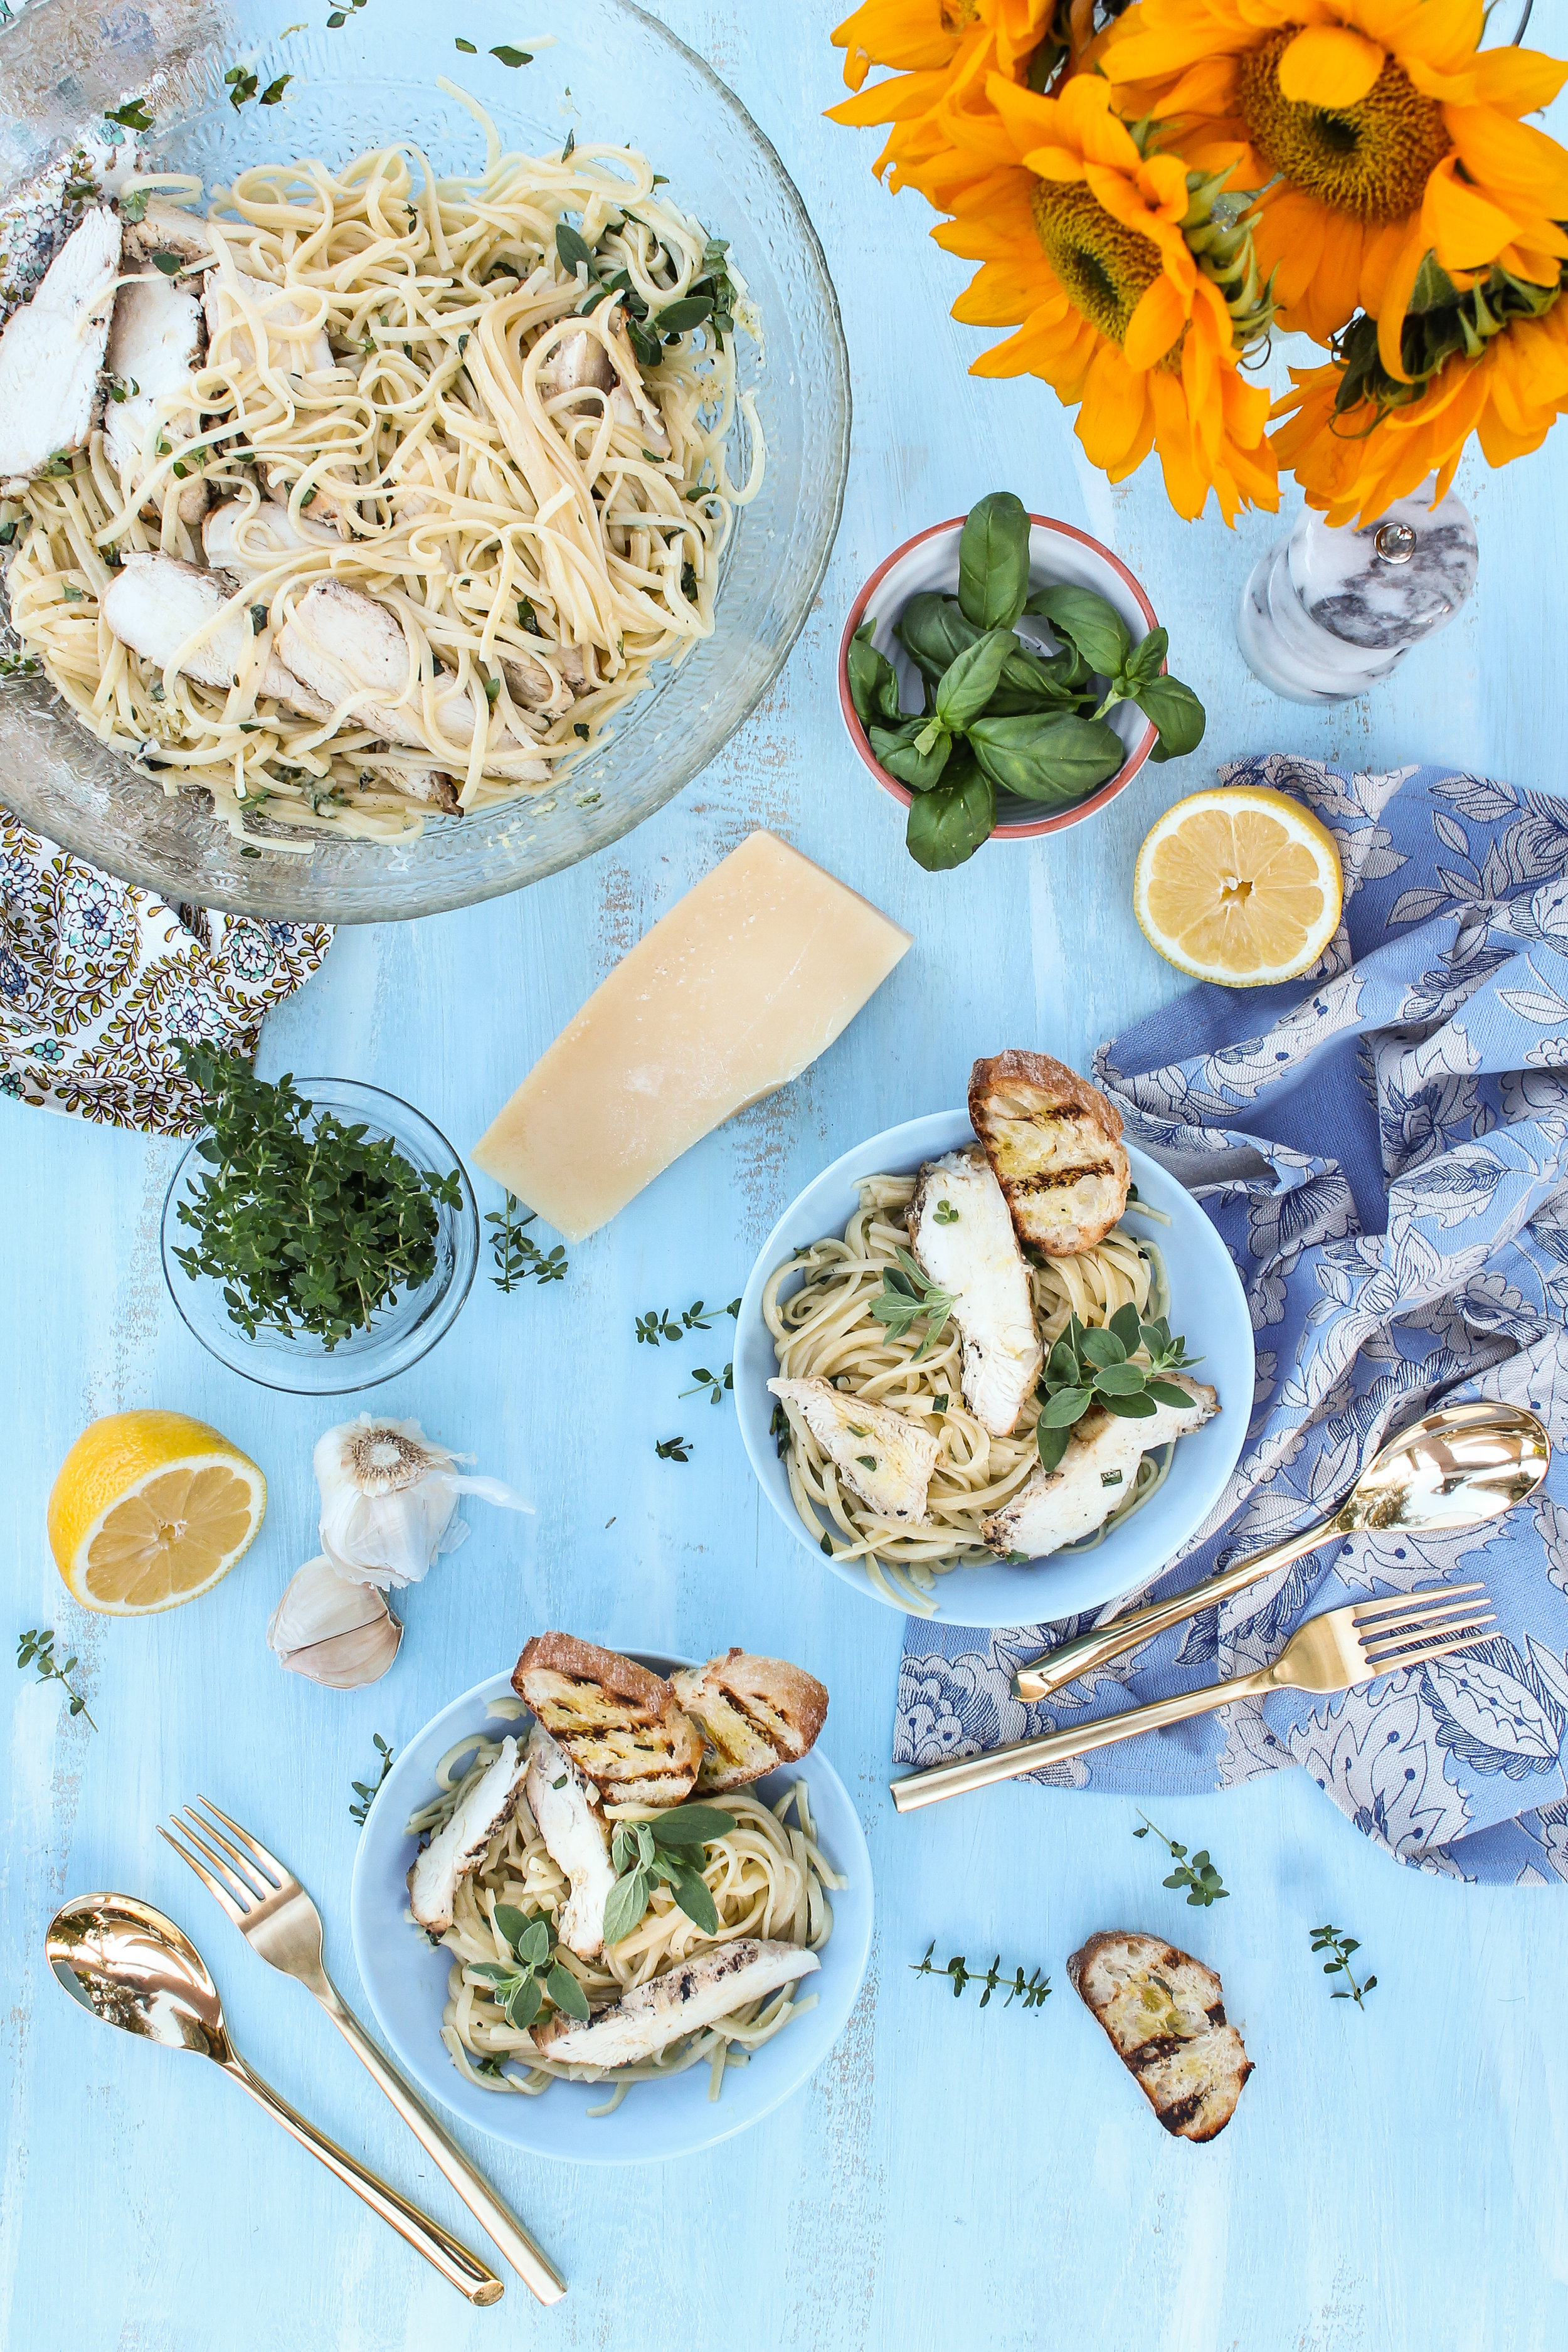 This Herb Garden Linguine with Grilled Chicken is fast and simple, and the perfect way to use up your fresh herbs!  Find the recipe on www.pedanticfoodie.com!